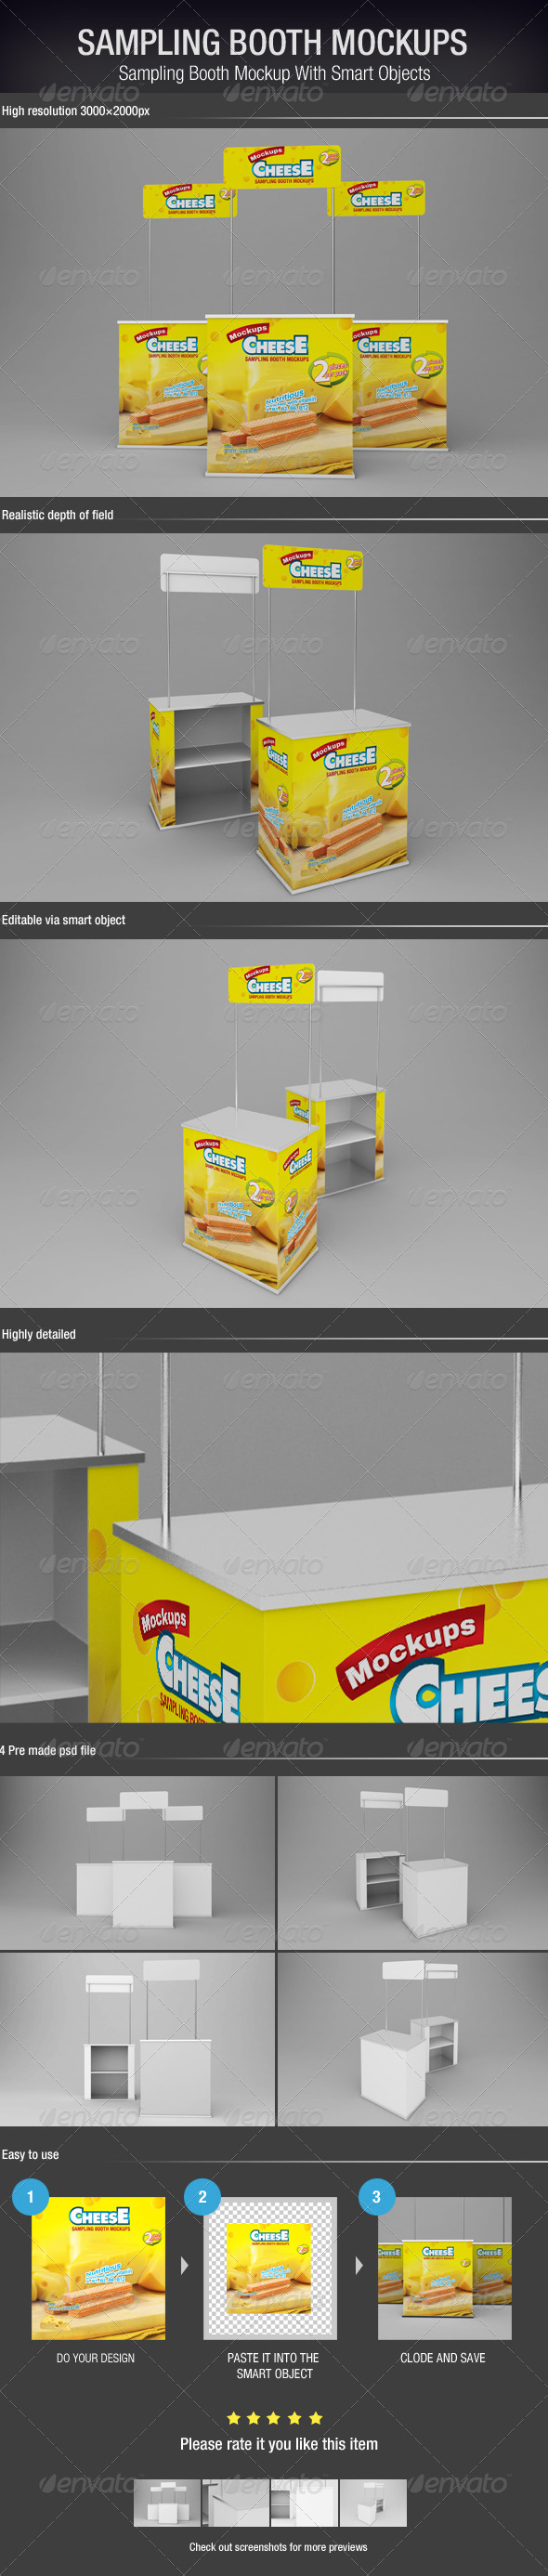 GraphicRiver Sampling Booth Mockups 6071281